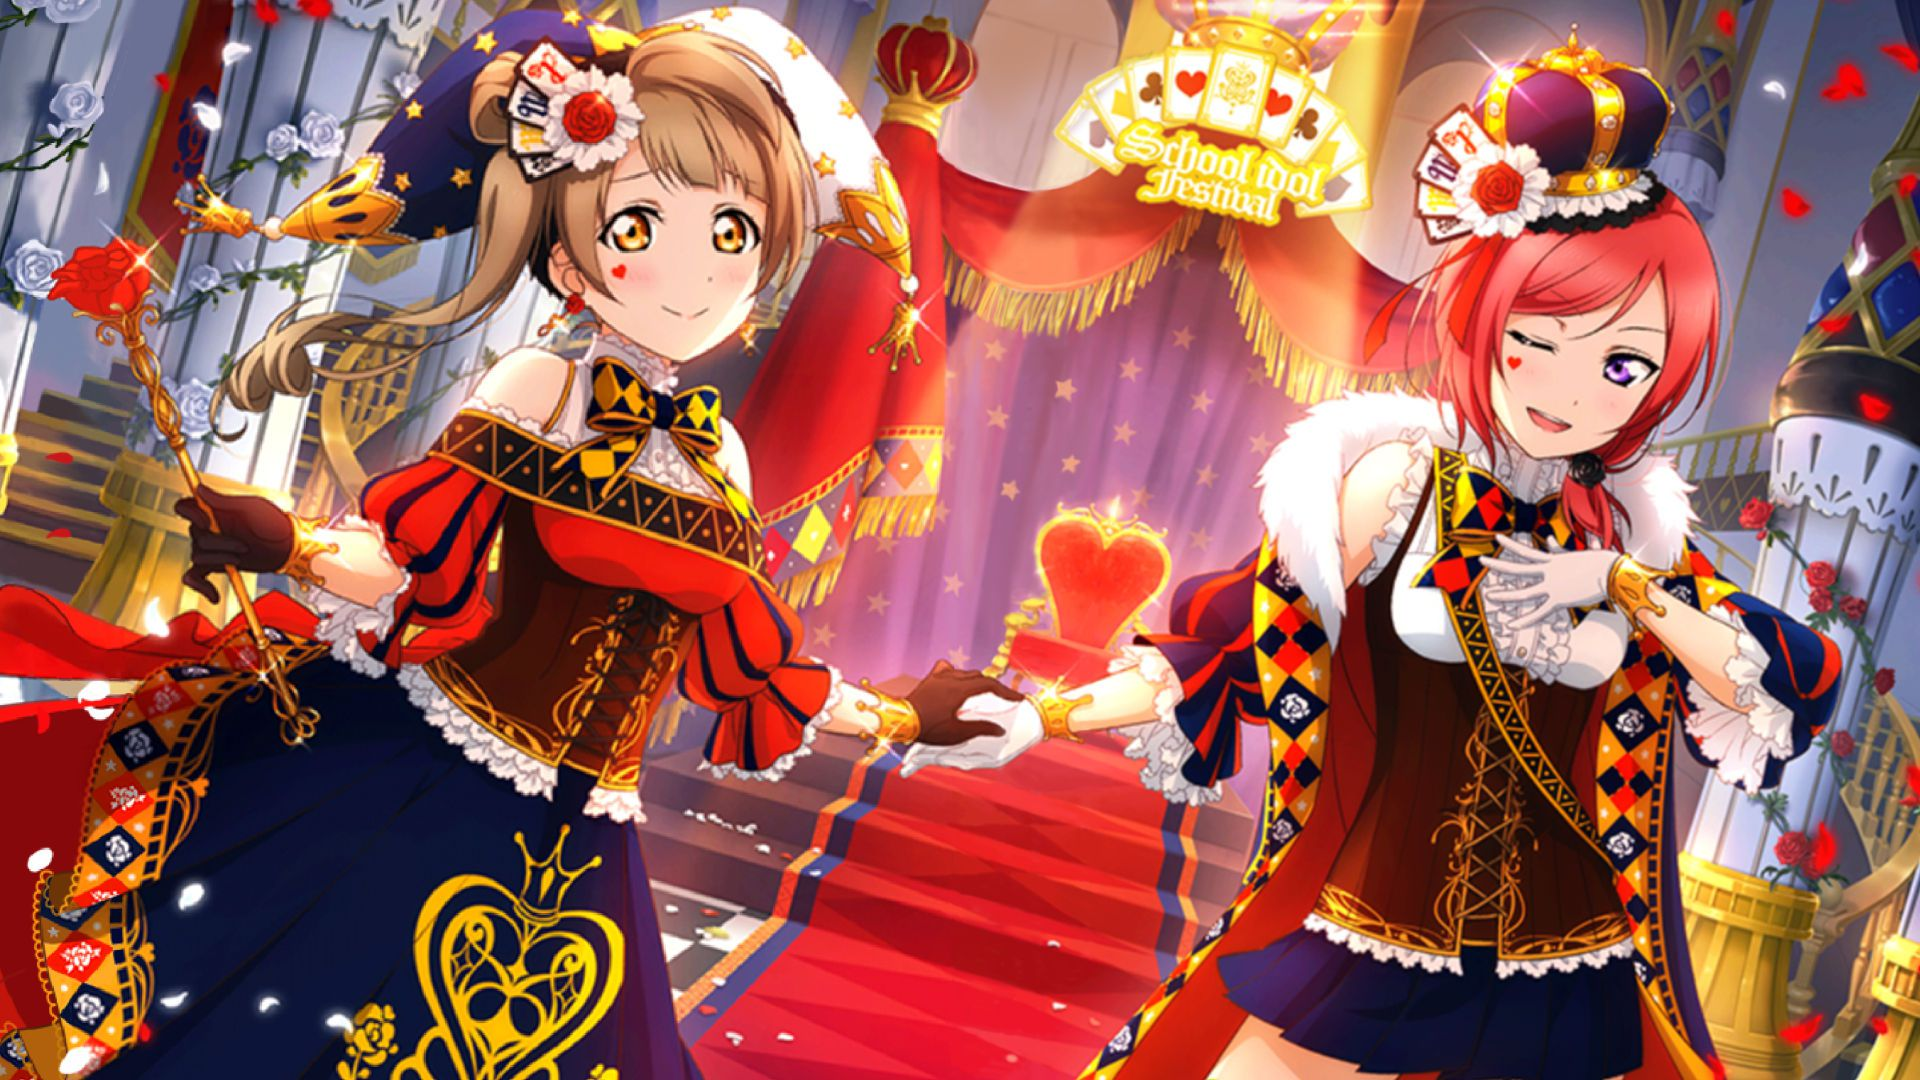 23258_lovelive_PC